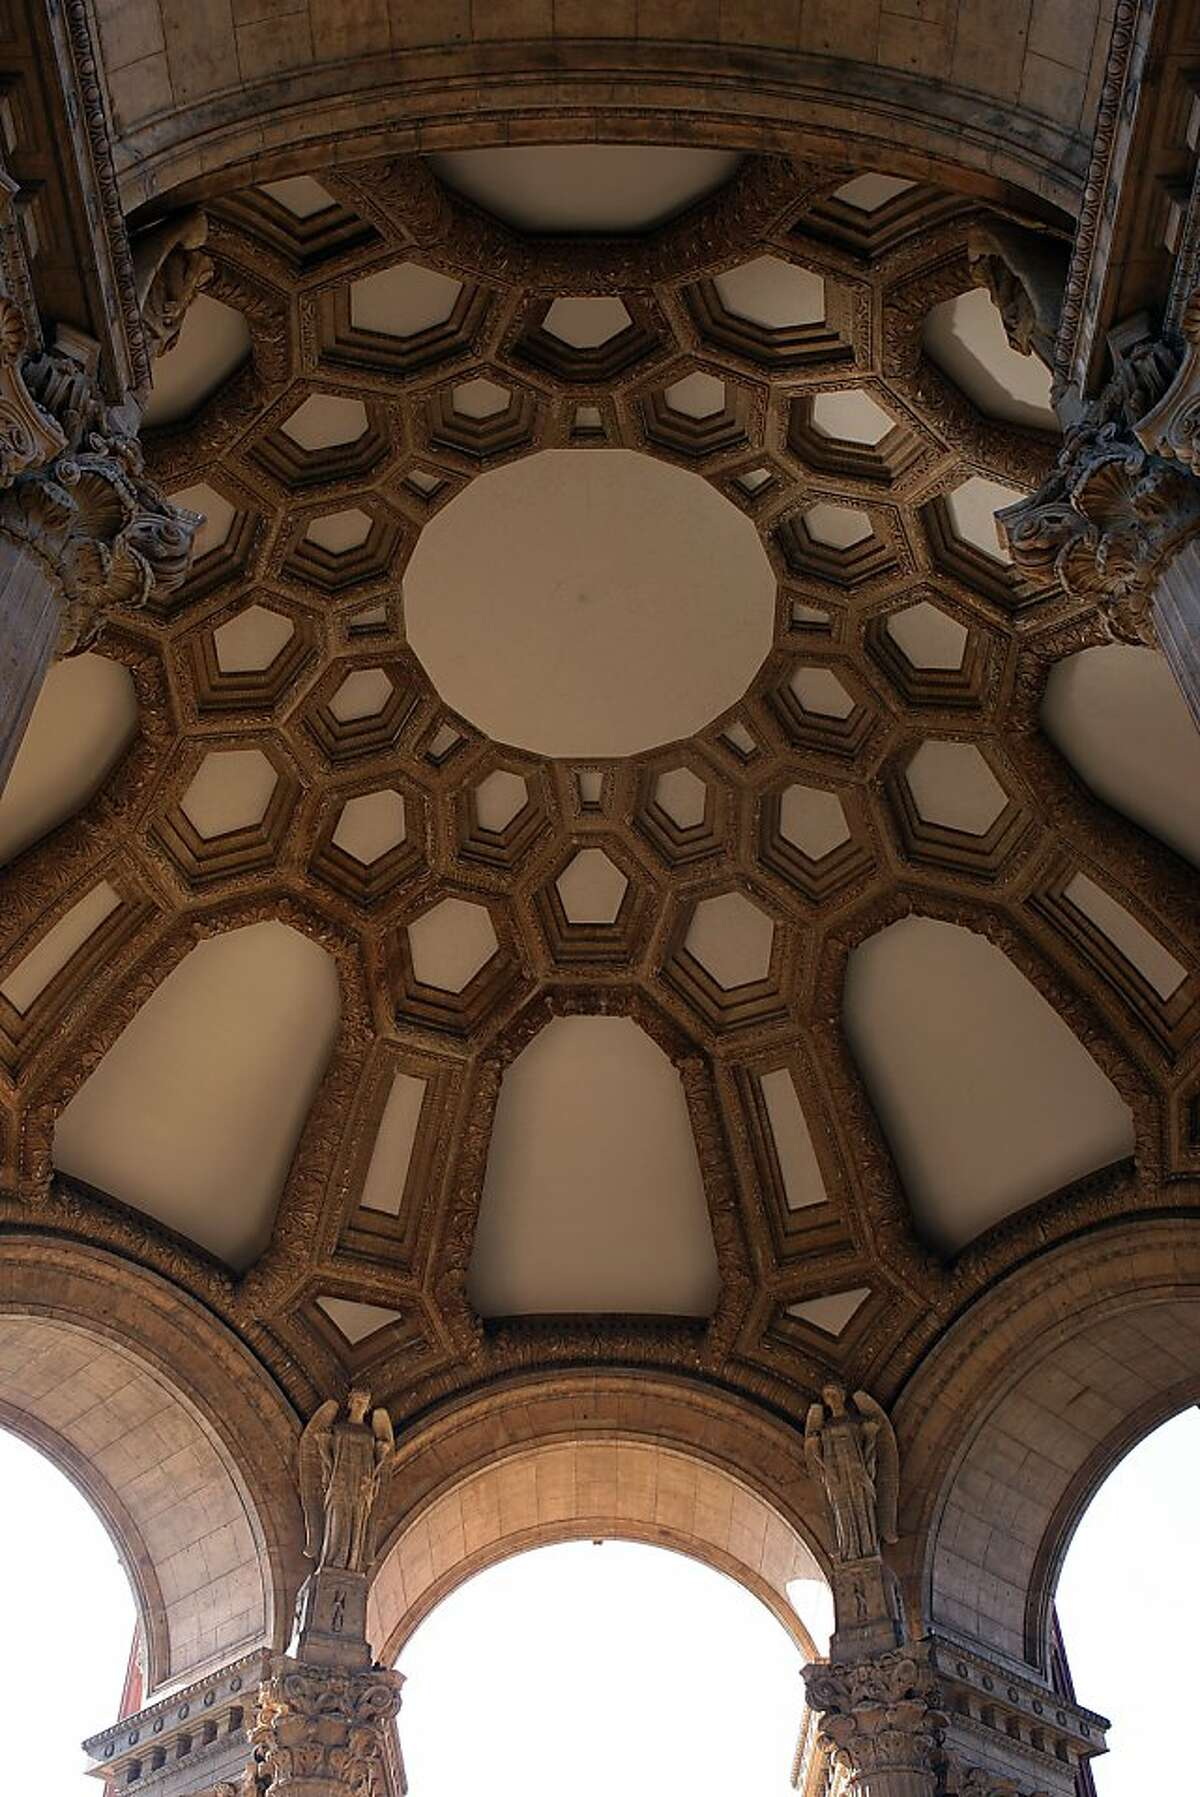 The Palace of Fine Arts in San Francisco, Calif., will soon open to the public after having had it's $21 million dollar renovation. A view of the underside of the dome of the rotunda on Tuesday, January 4, 2011.